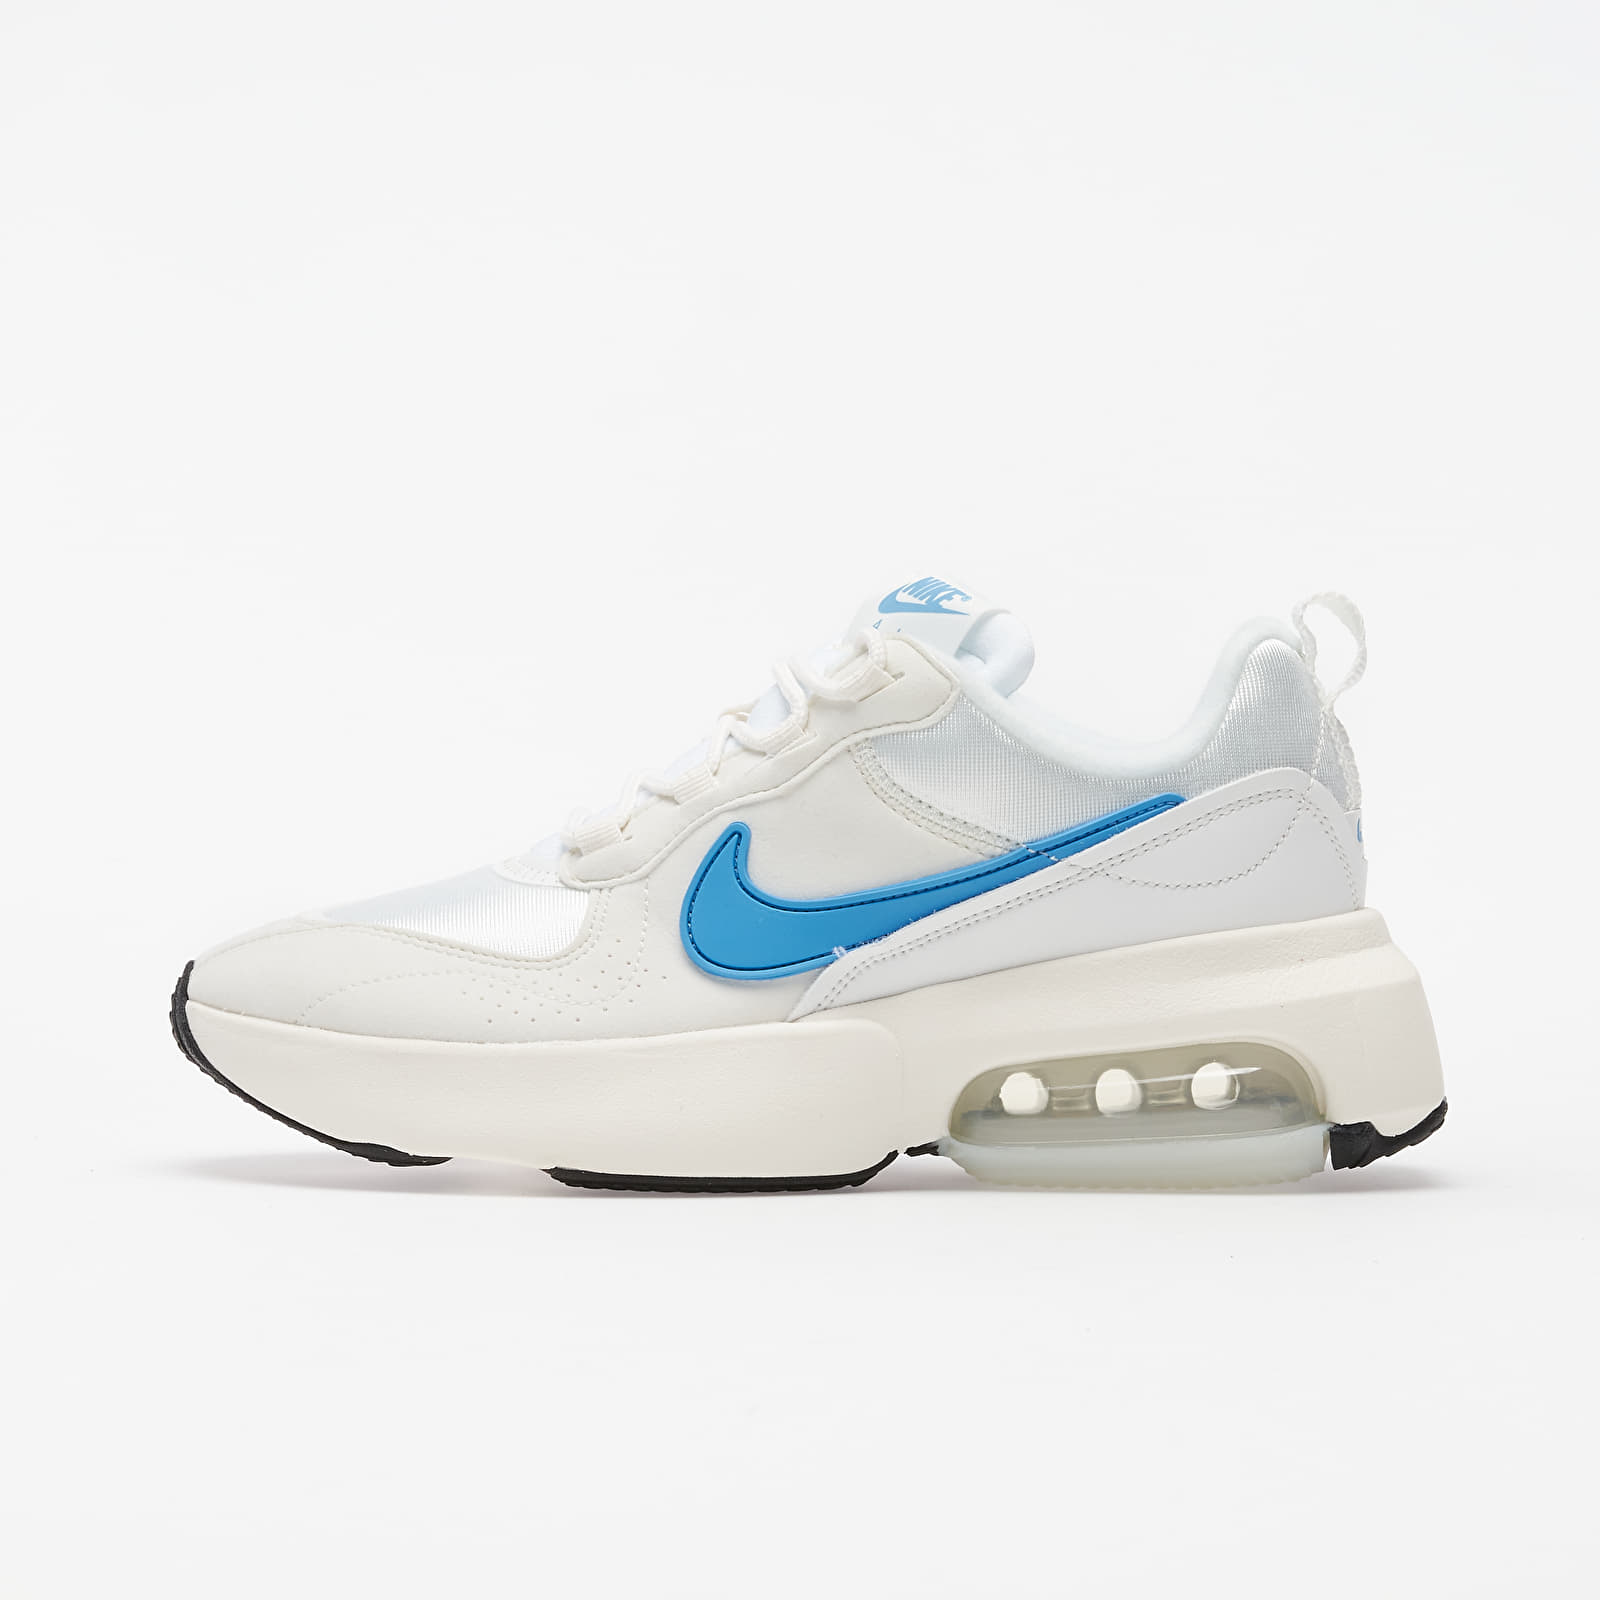 Zapatillas mujer Nike W Air Max Verona Summit White/ Coast-Sail-Platinum Tint